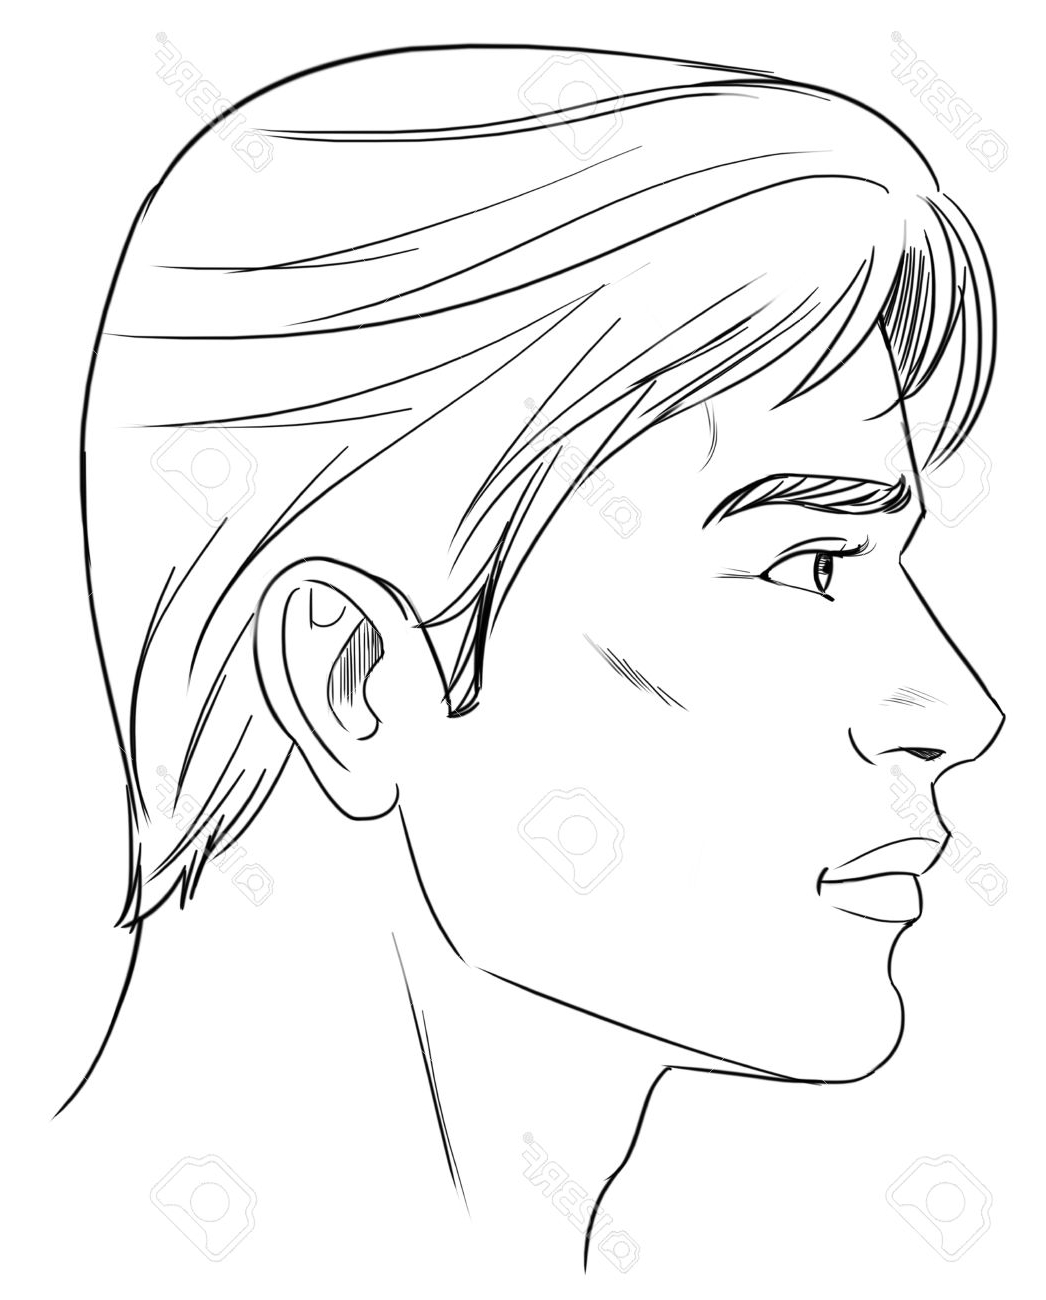 1046x1300 Drawing Face Profile Outline Outline Side Profile Of A Human Male